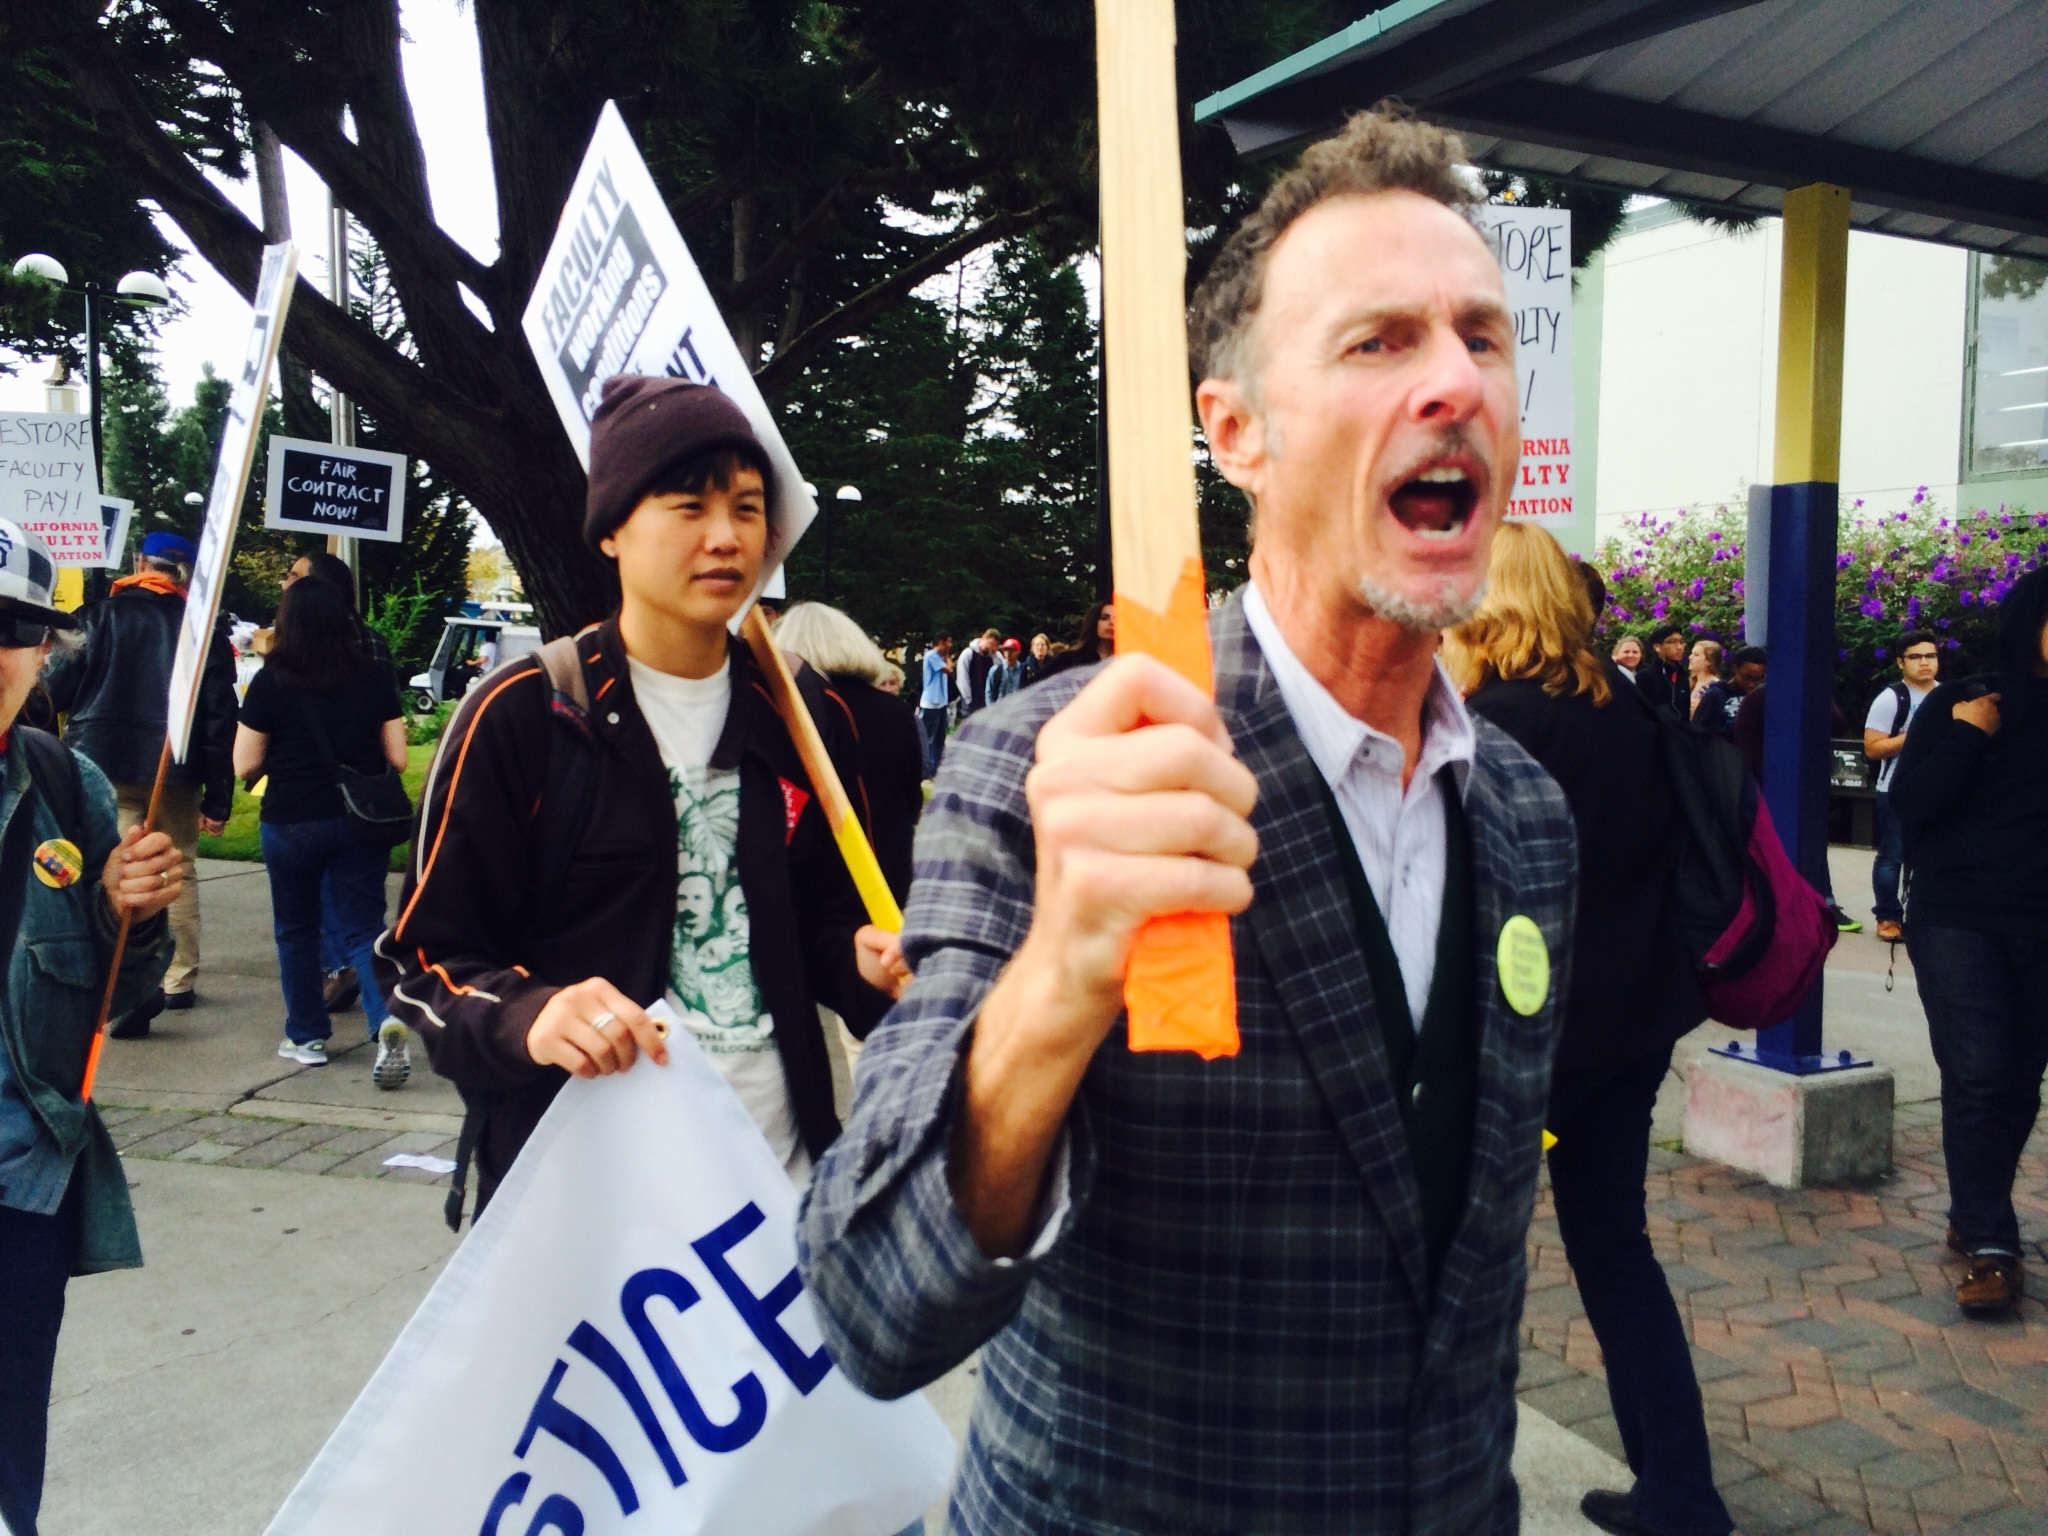 Michael Ritter marches and chants in a picket line in front of SF State Tuesday, Oct. 7, 2014. Students and faculty members gathered at the corner of 19th and Holloway avenues occupying part of the campus entrance.